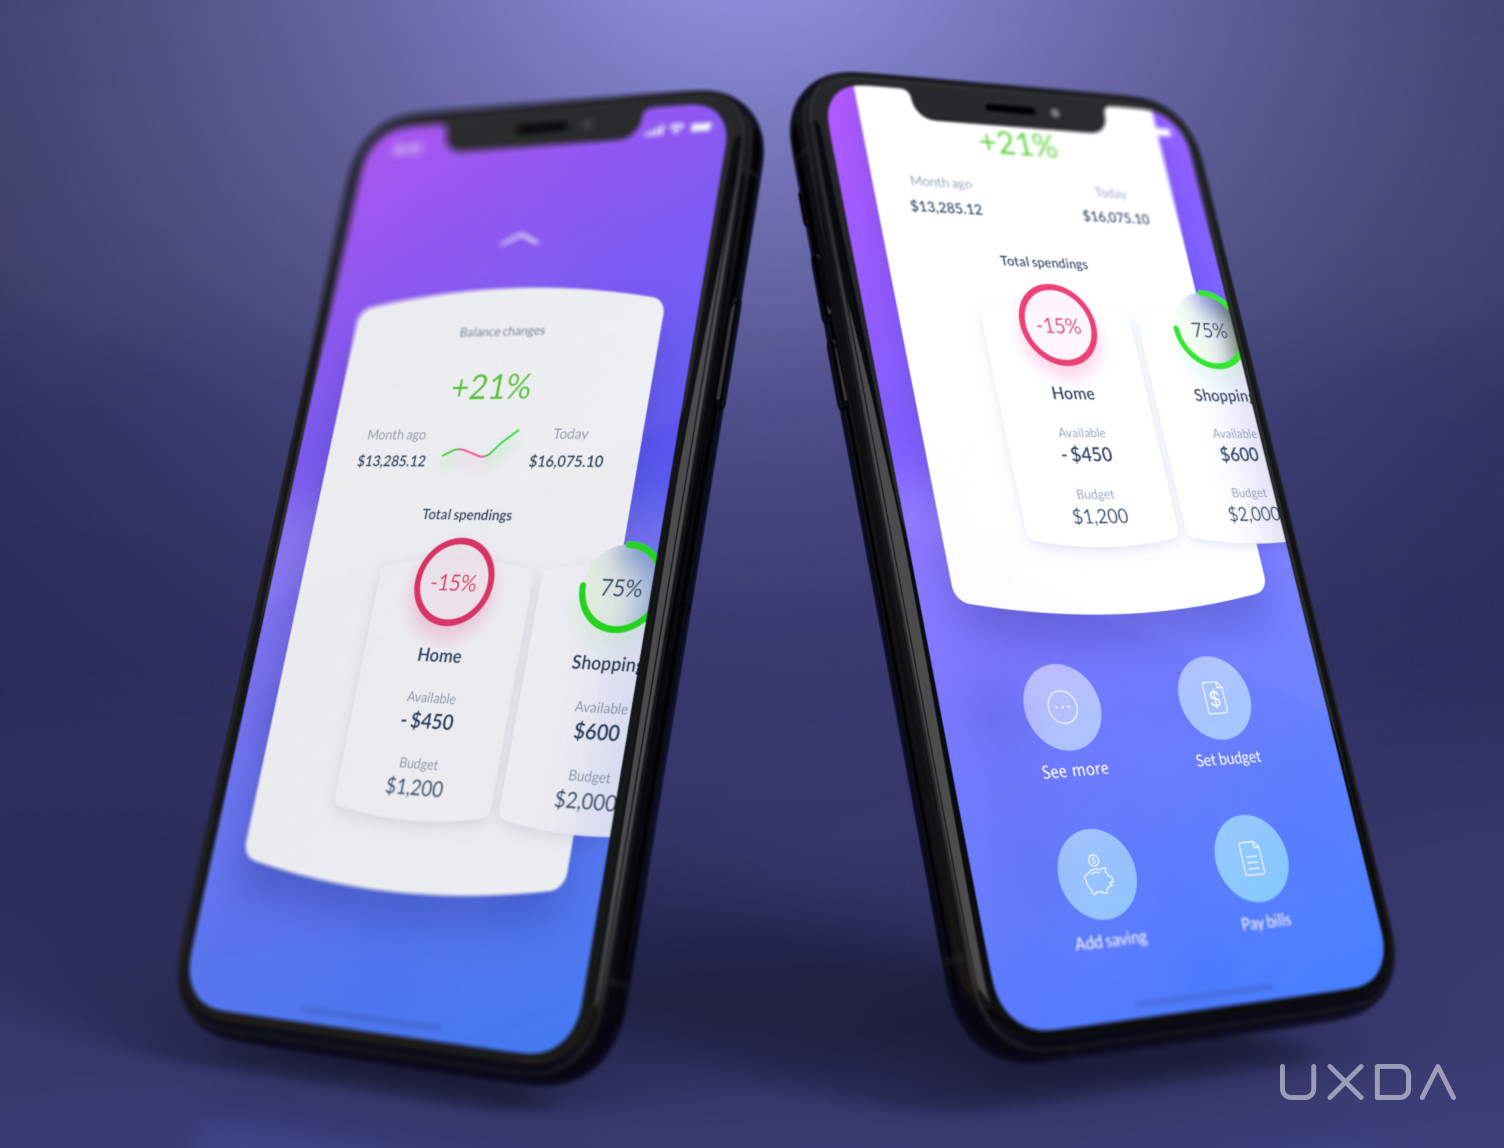 ux-case-study-how-to-create-a-mobile-banking-super-app-s-spending-insights4.jpg